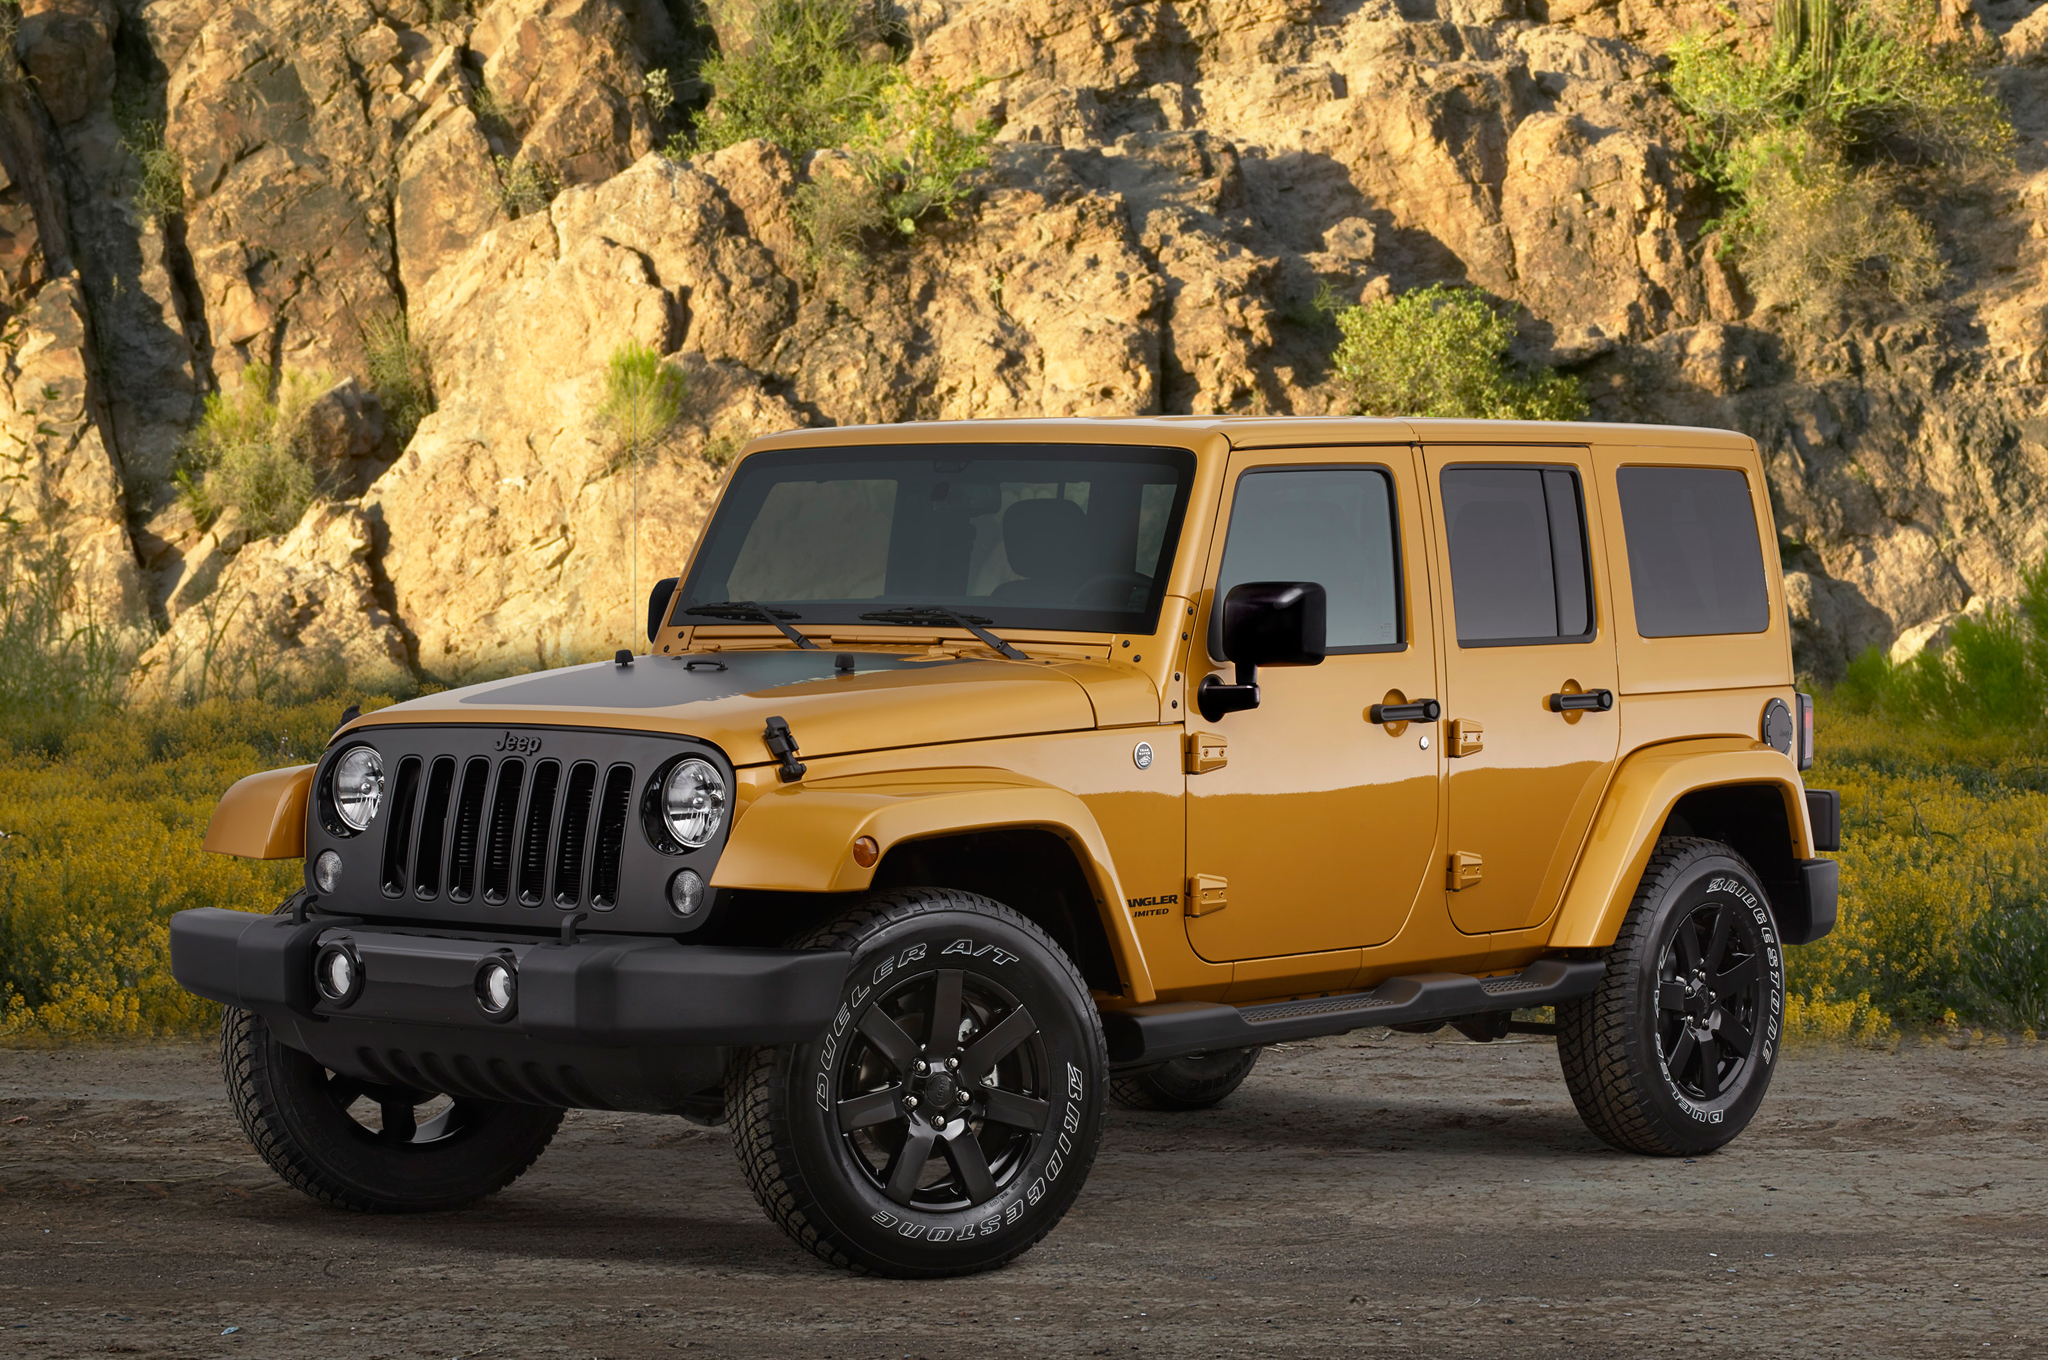 wheel jeep four owned sport inventory suv wrangler used rubicon unlimited pre warrenville in drive